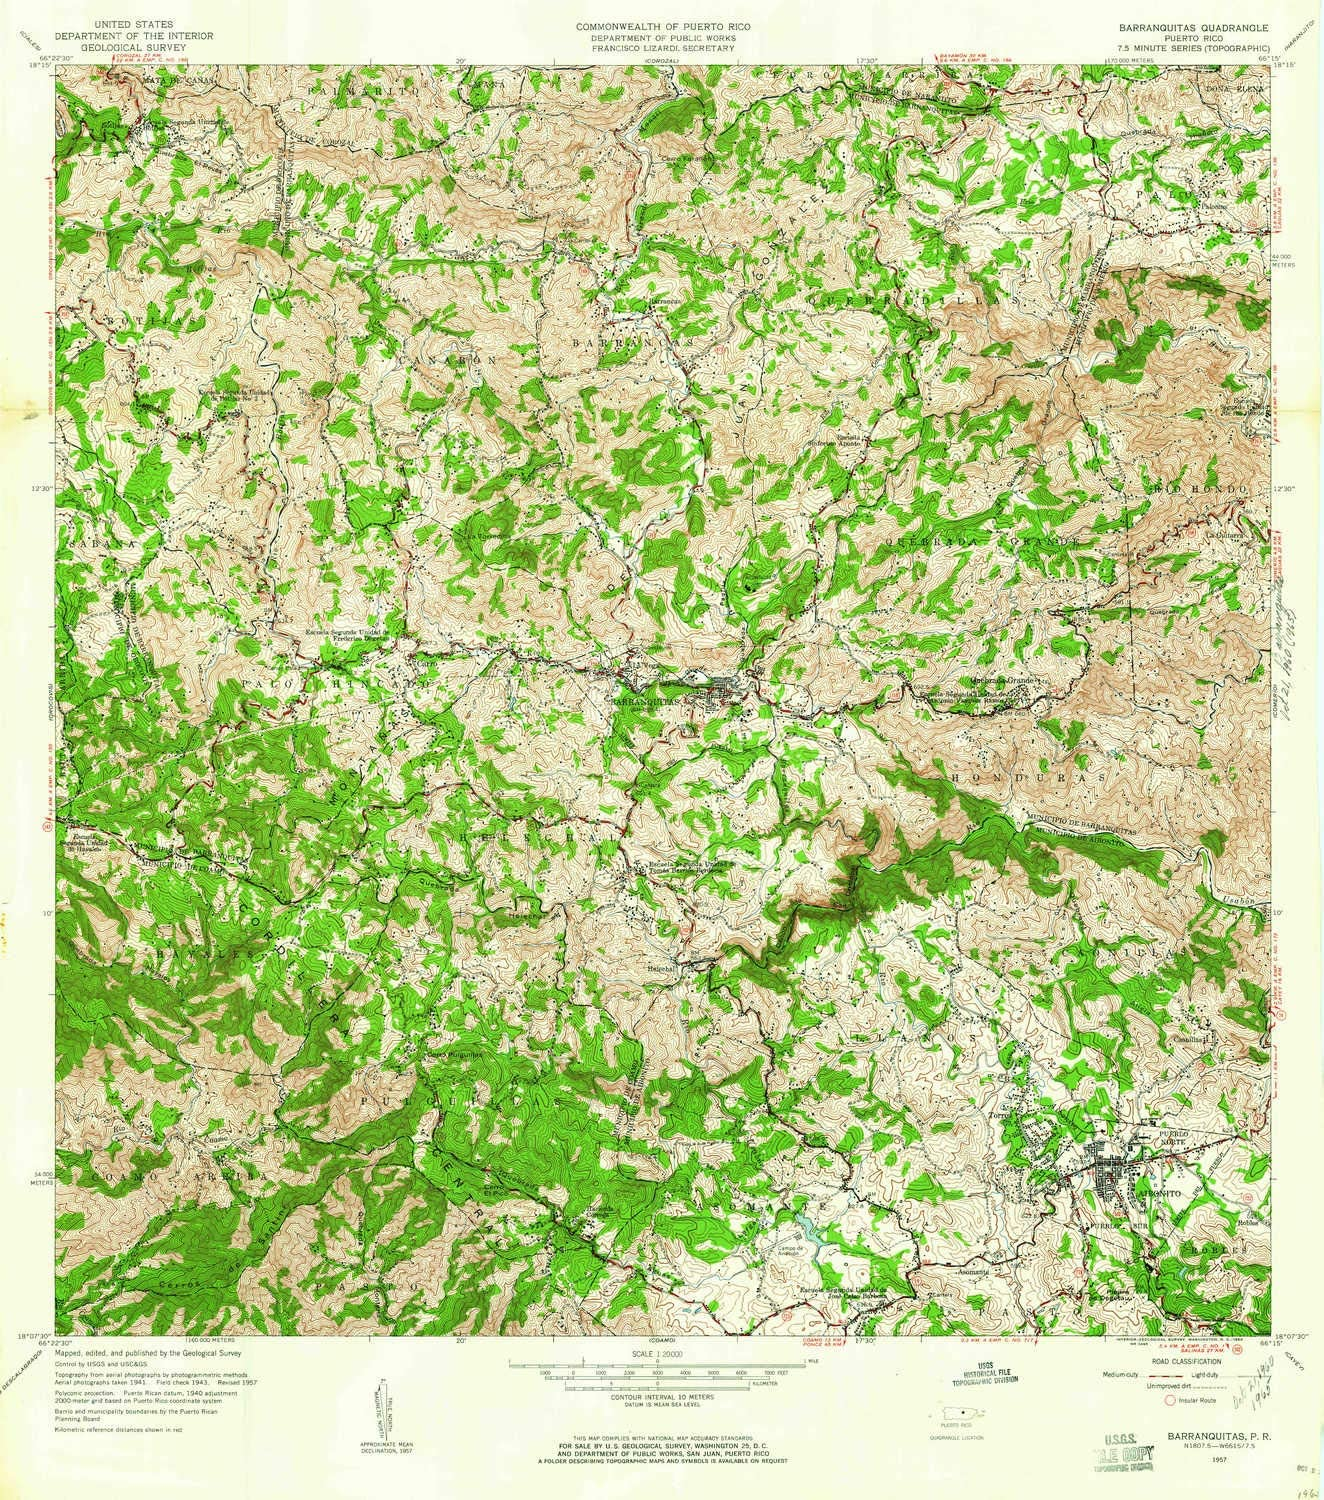 YellowMaps Barranquitas 70% OFF Outlet PR topo map 1:20000 Limited price X Scale 7.5 Mi